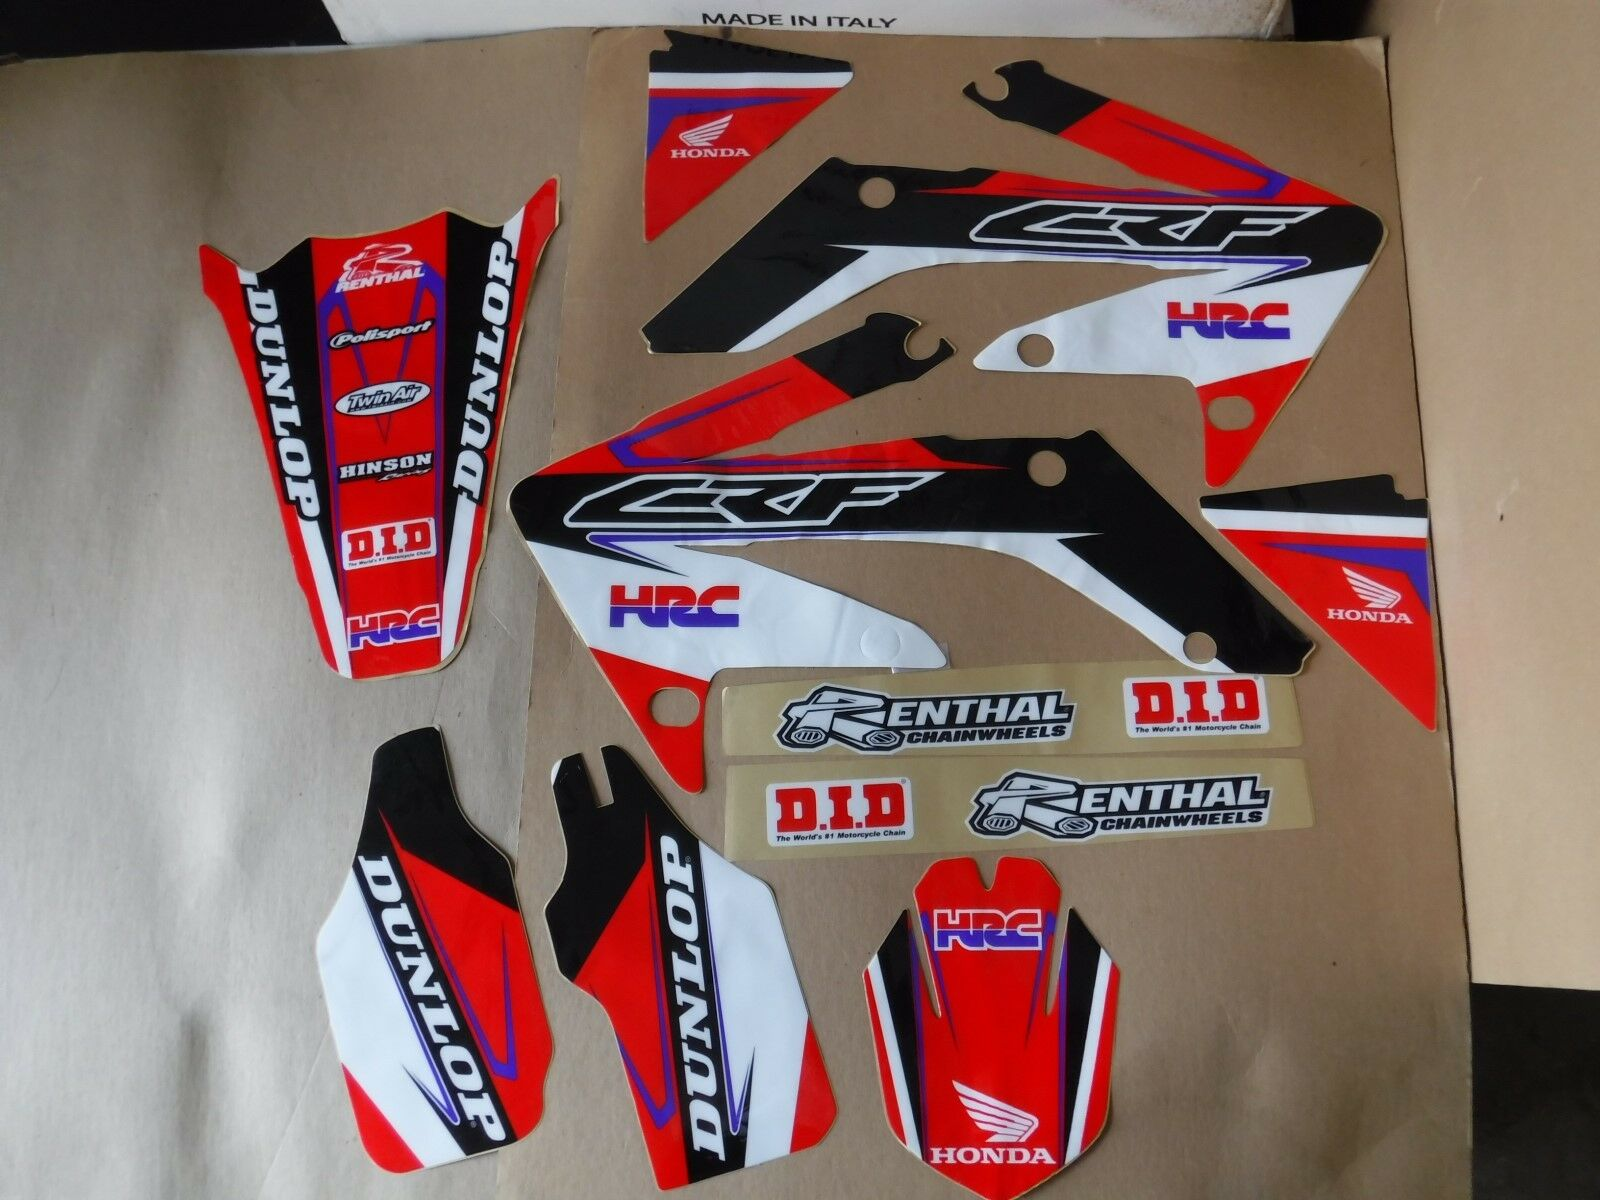 TEAM HONDA RACING  GRAPHICS  CRF250R  2004 2005 2006 2007 2008 2009  CRF250 2